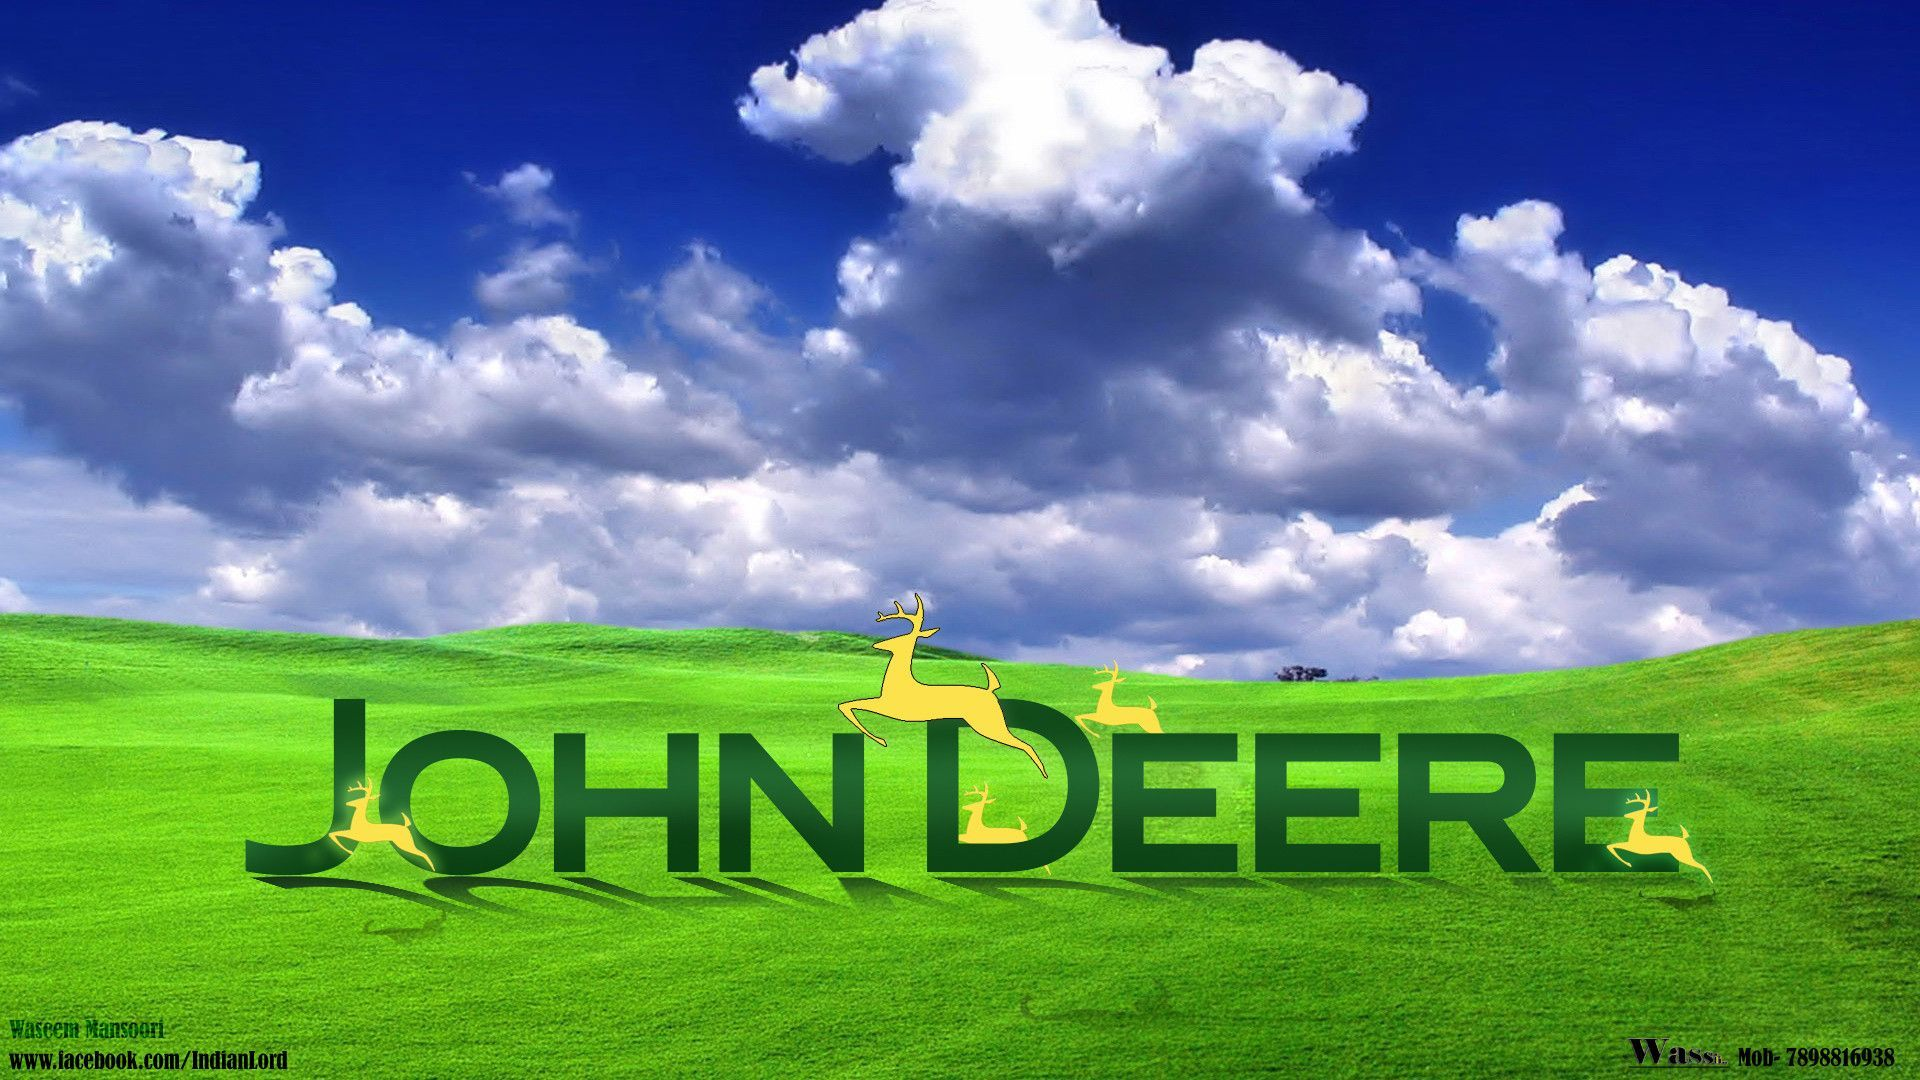 John Deer Wallpaper